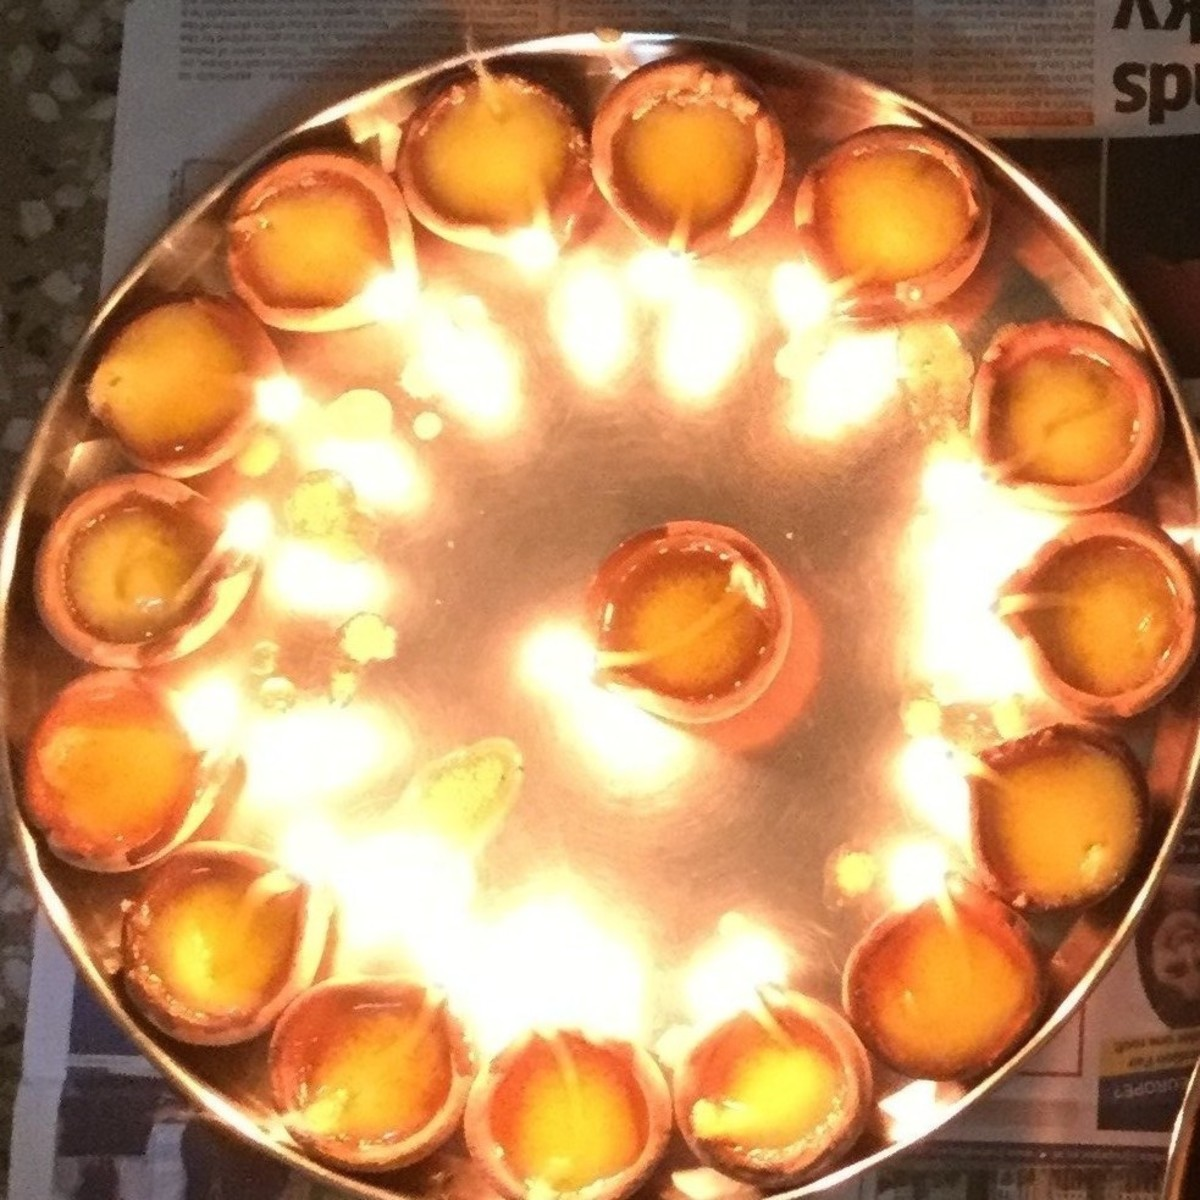 The Indian Festival of Lights: Make Diwali Sweets at Home